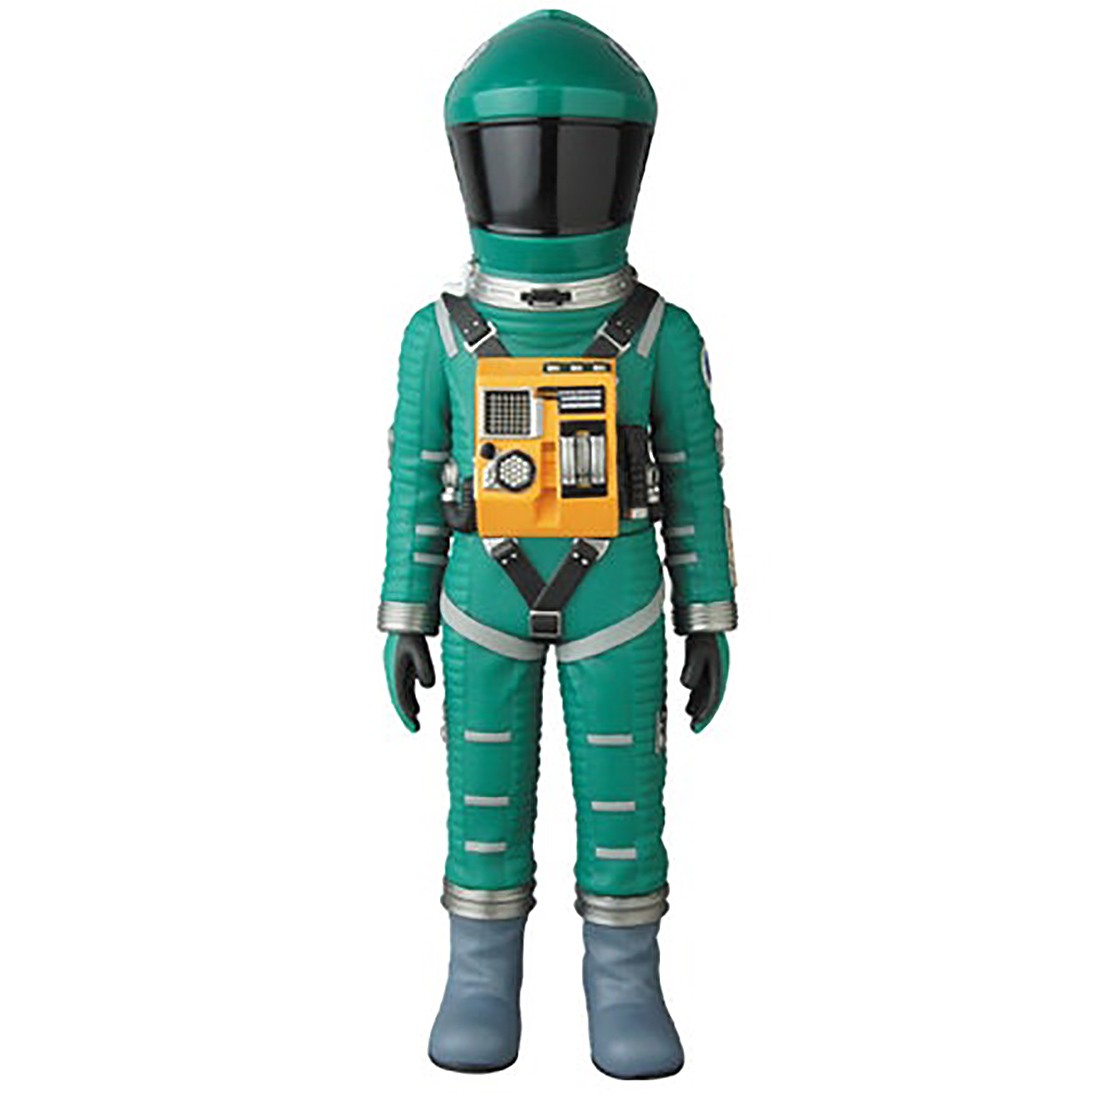 PREORDER - Medicom VCD 2001 A Space Odyssey Space Suit Green Ver. Figure (green)